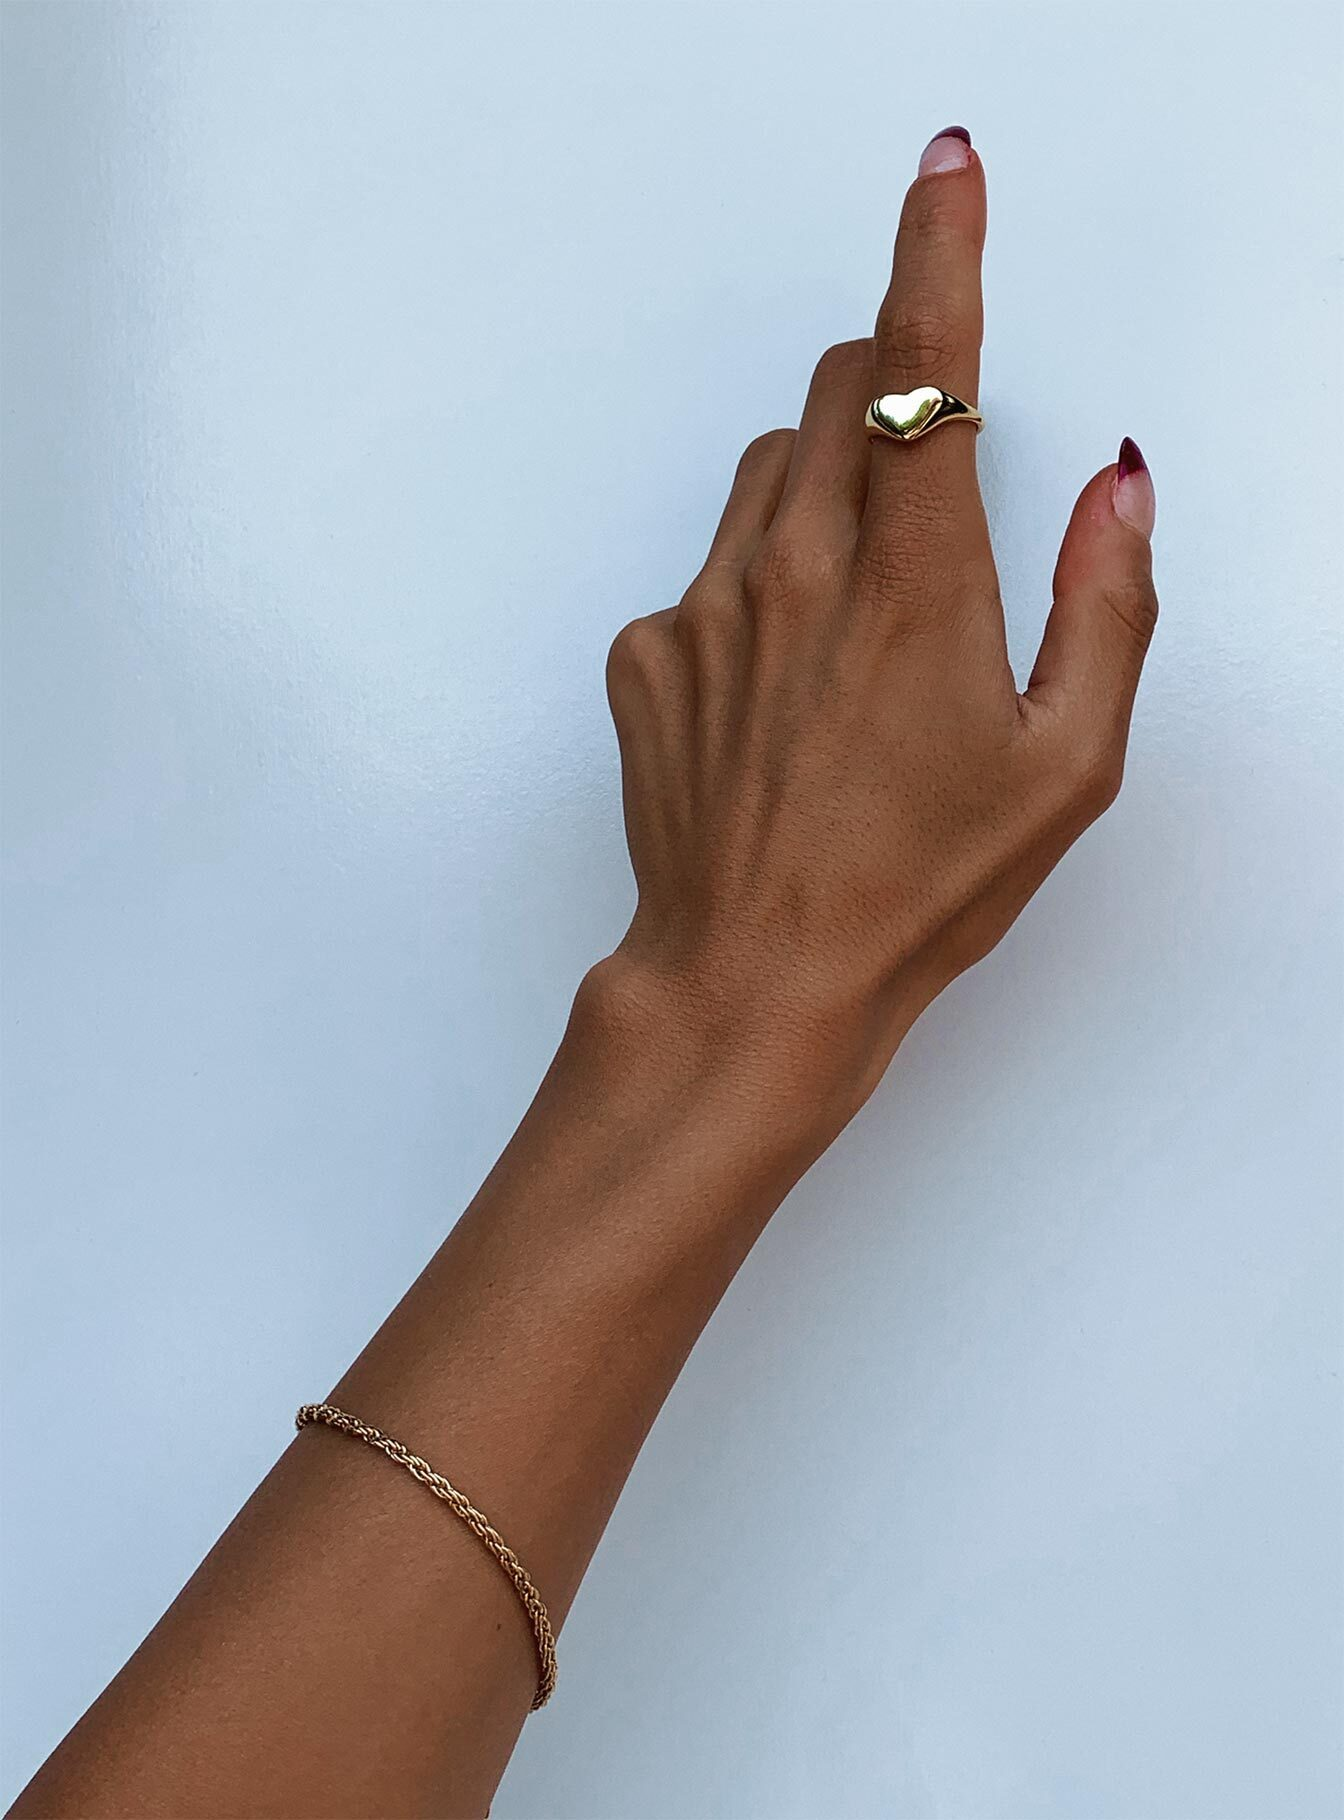 18k Gold Plated Jewelry (Side B)